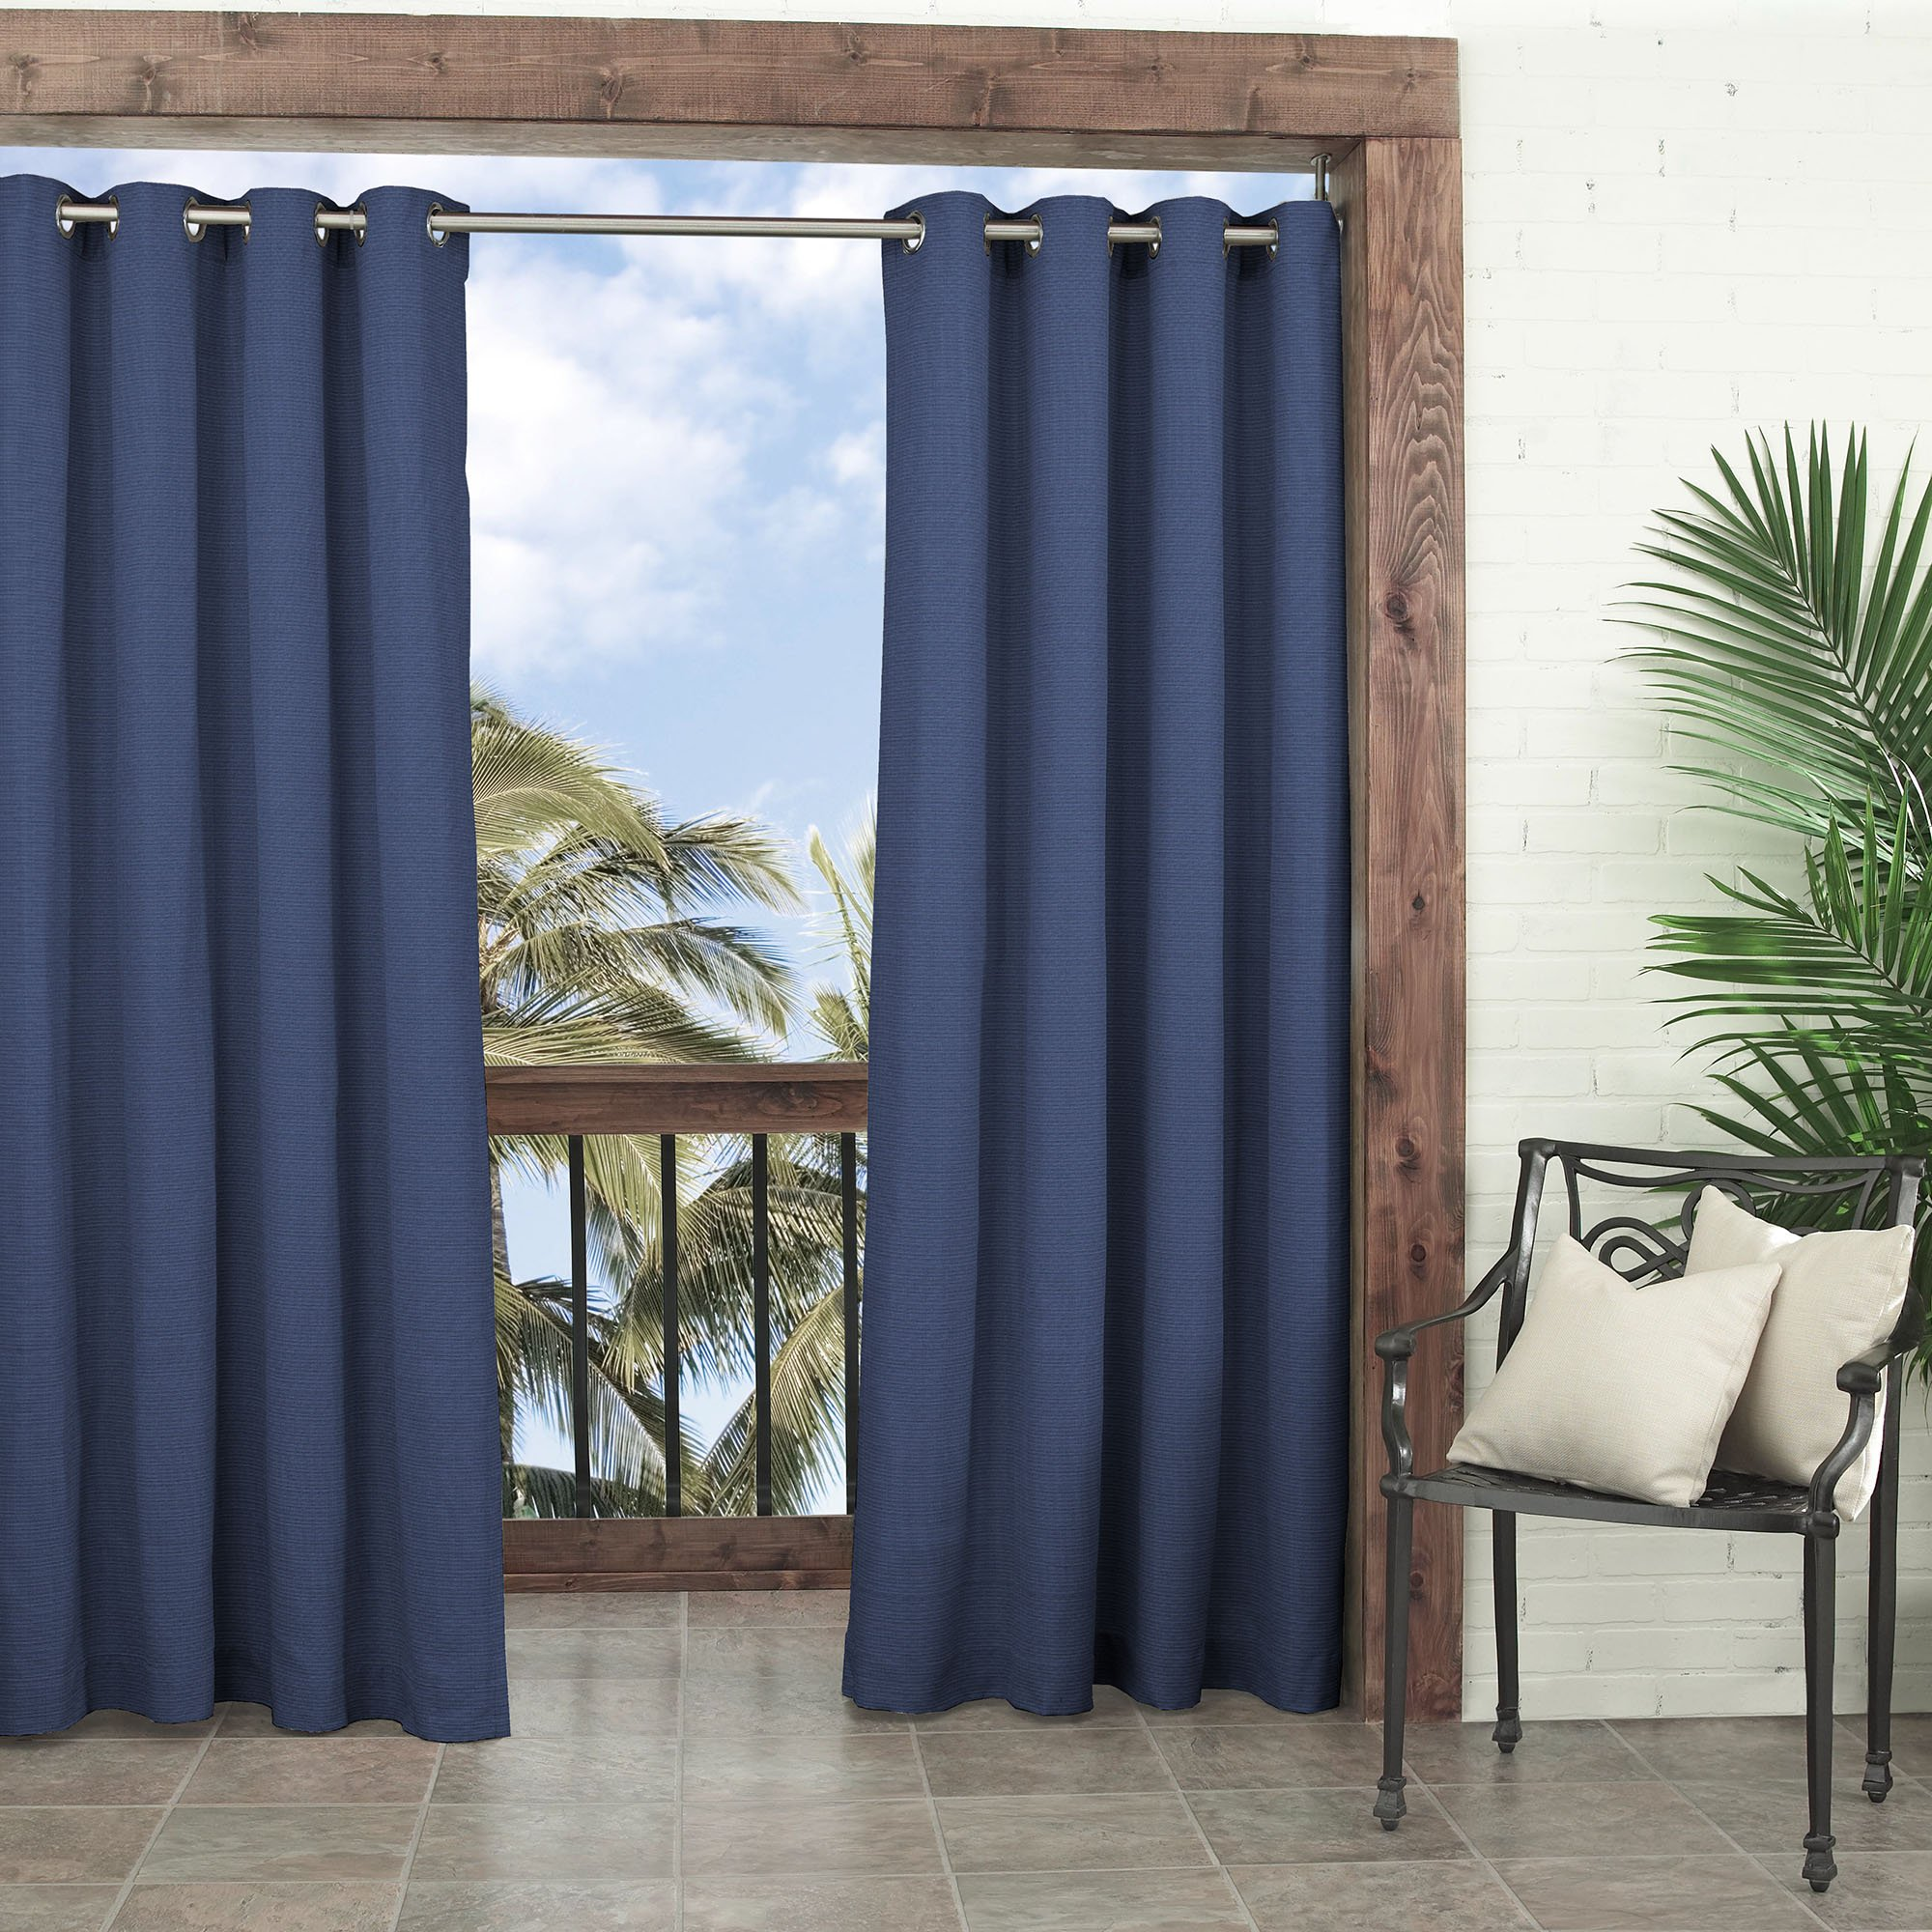 PARASOL Outdoor Curtains for Patio - Key Largo 52'' x 84'' Thermal Insulated Darkening Single Panel Drape Blinds Backyard, Indigo